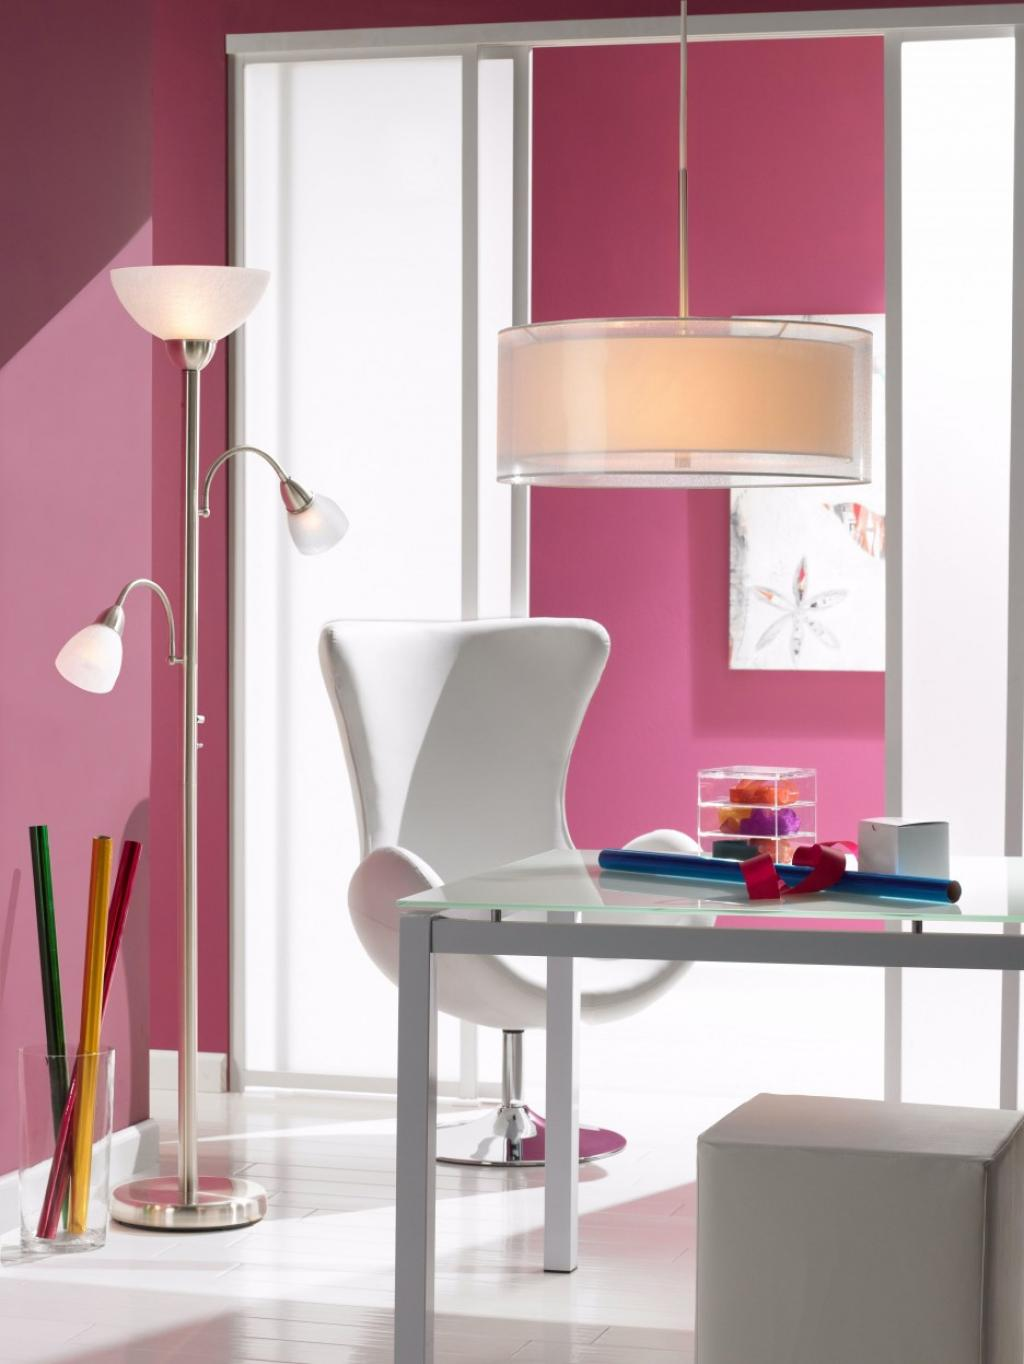 Elegant feminime floor light shade designs for home office